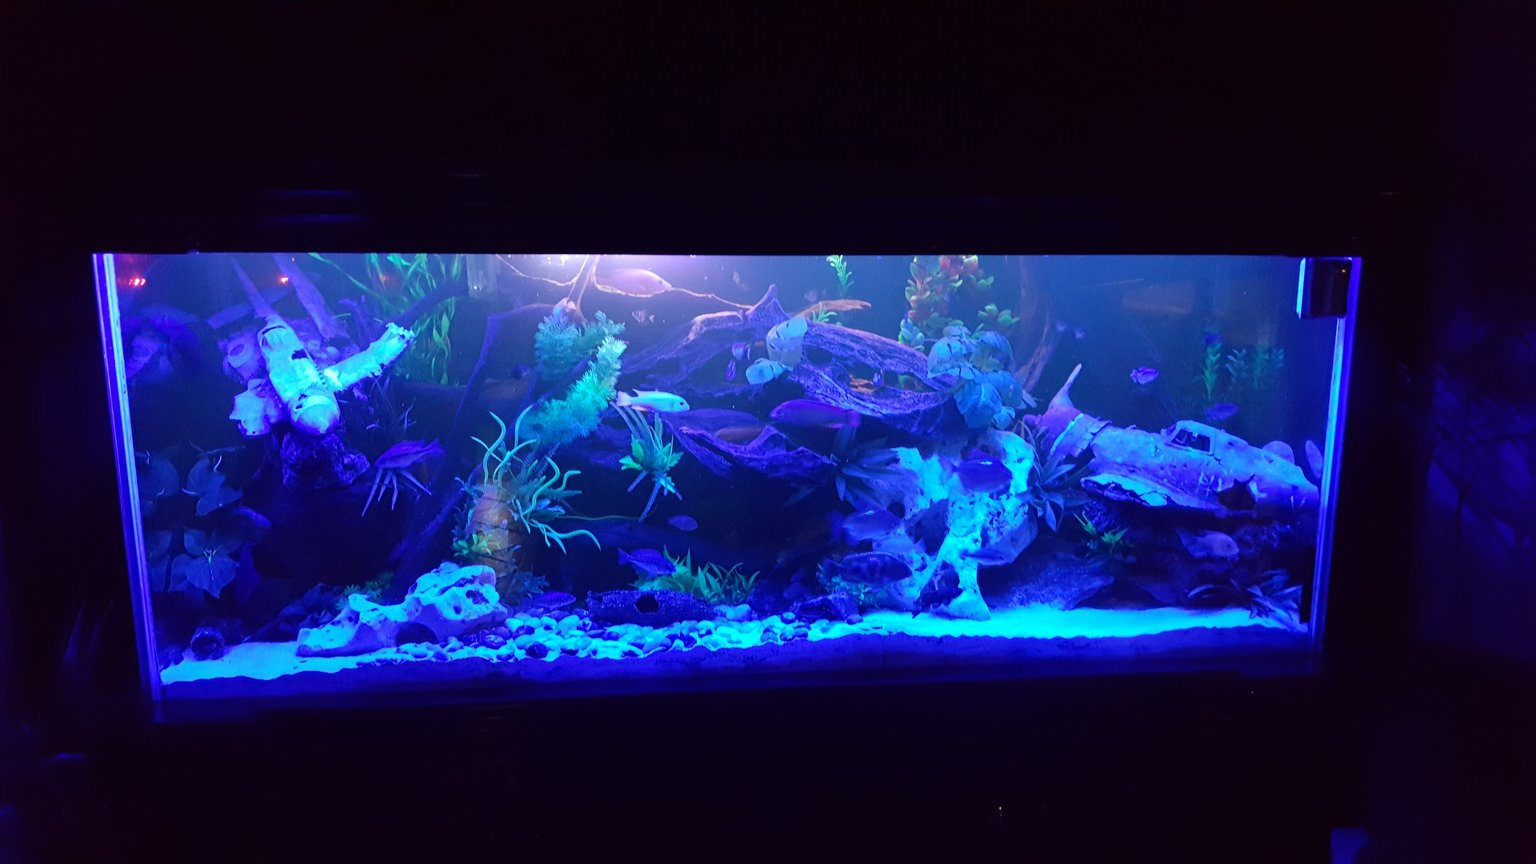 fish tank picture - Tank at night